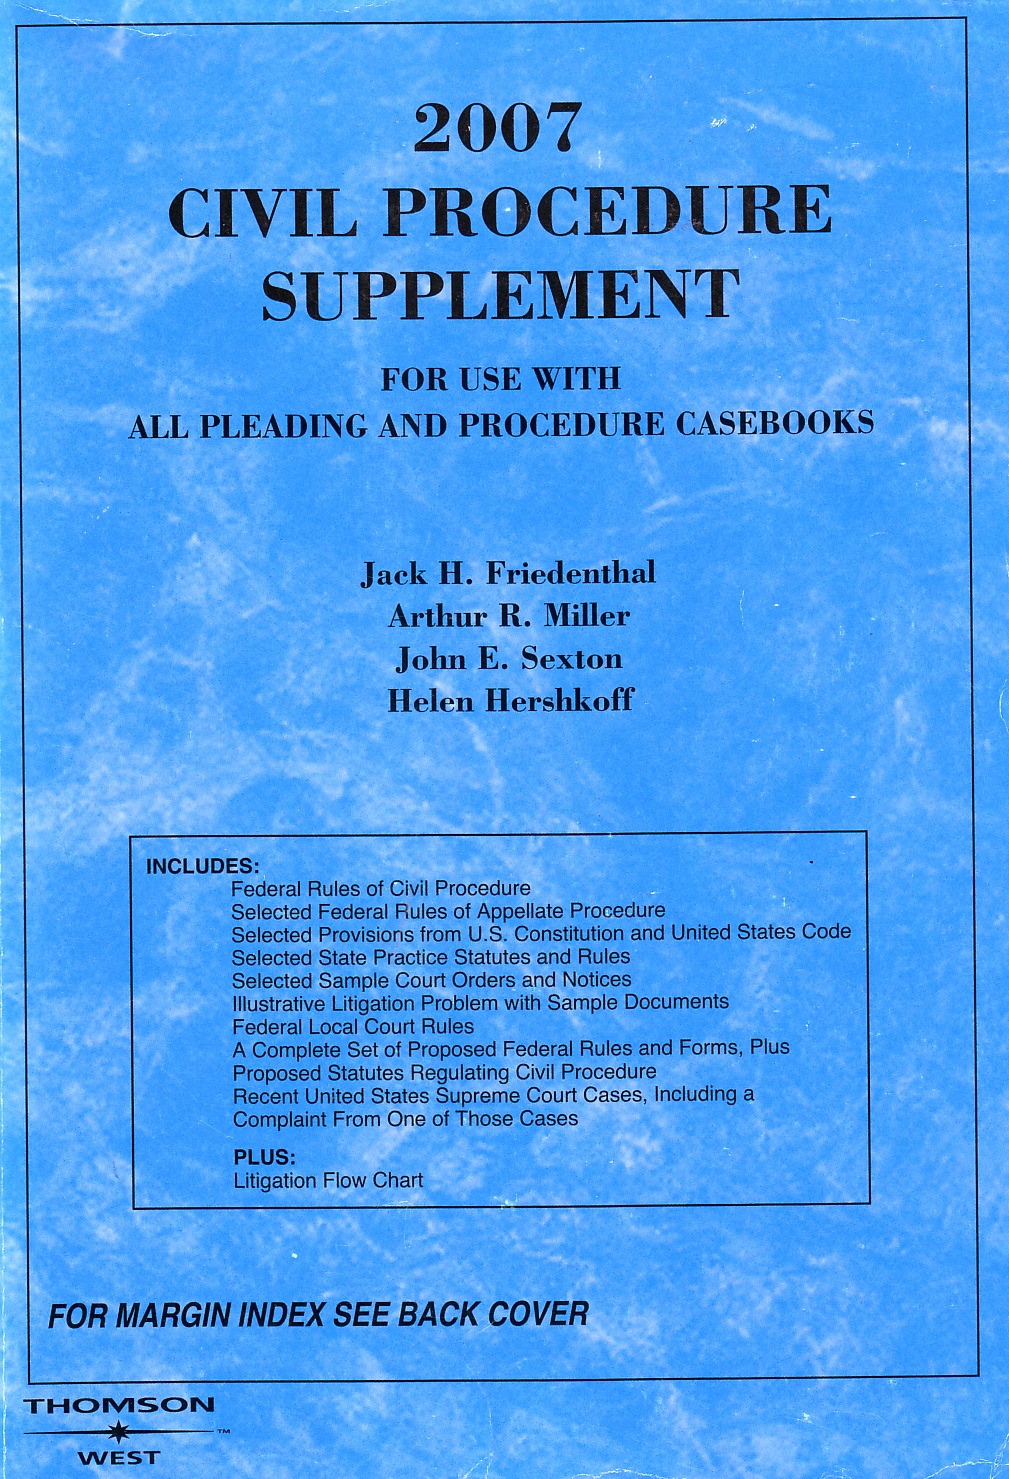 2007 Civil Procedure Supplement